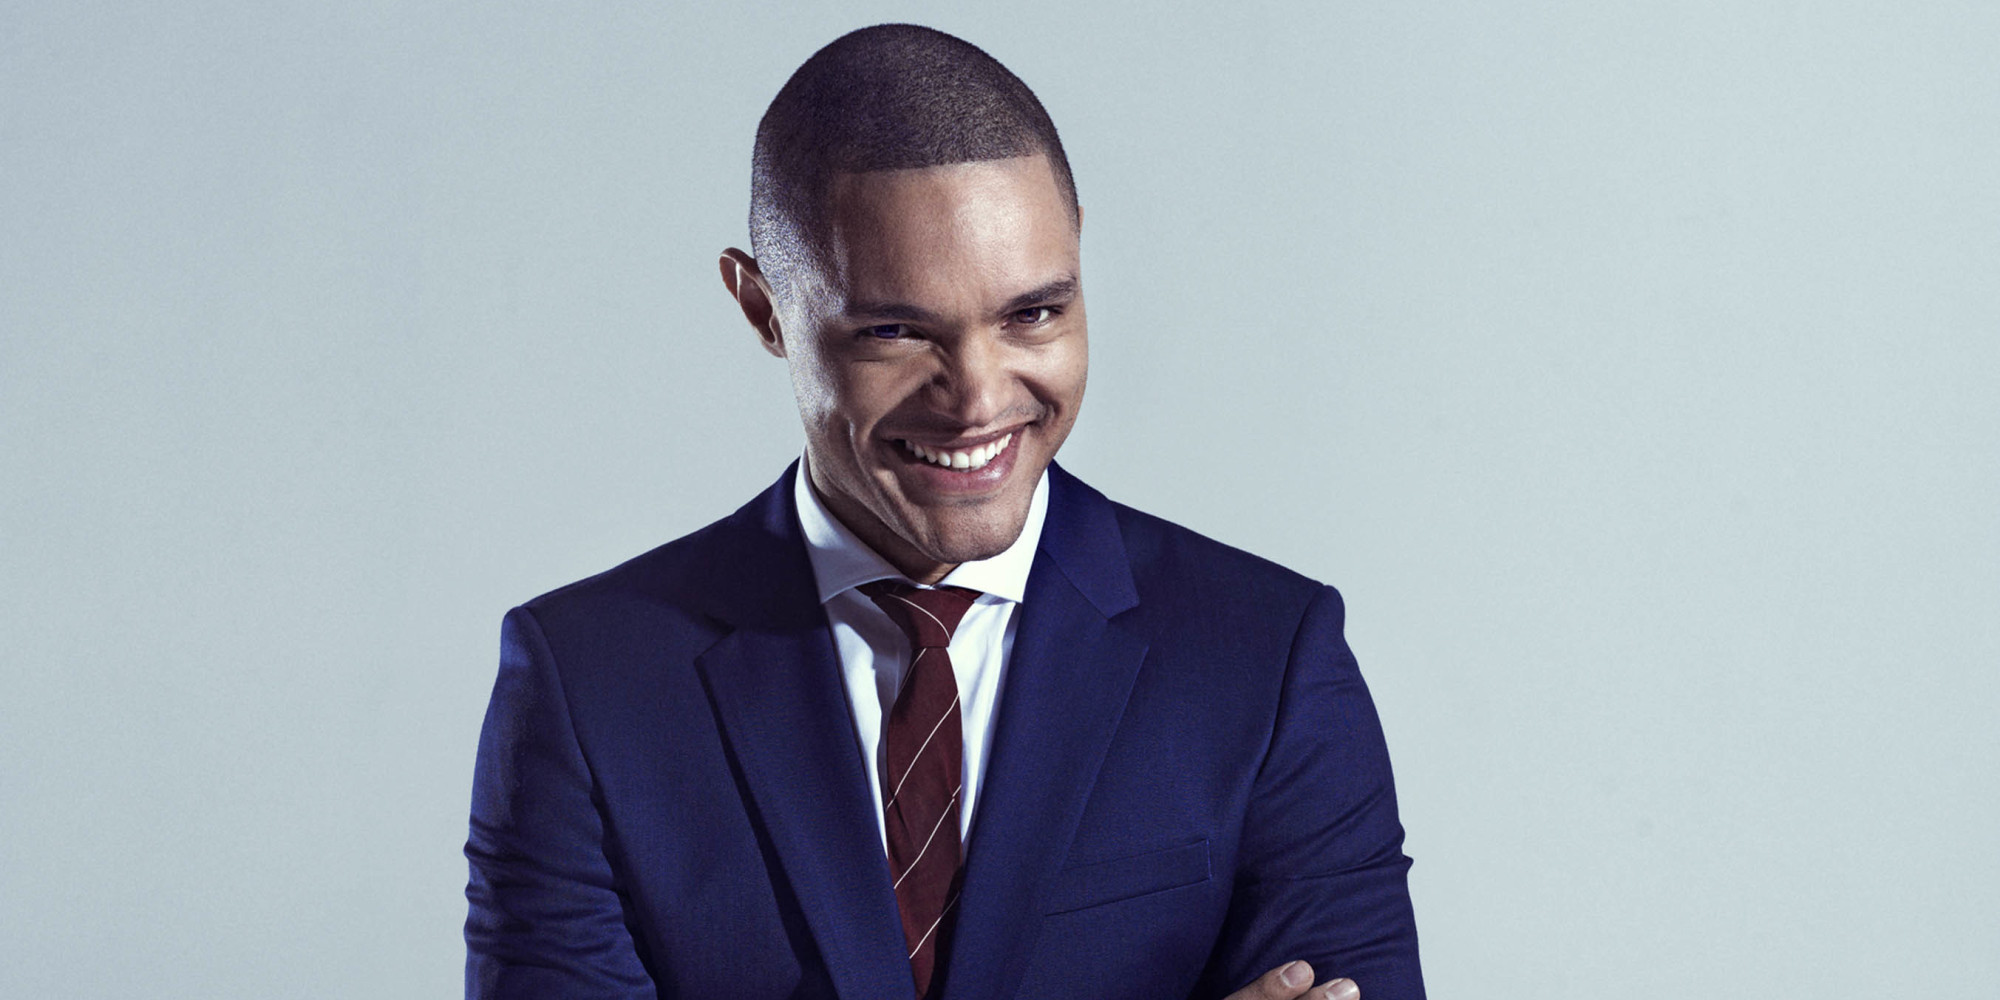 Trevor Noah earned a  million dollar salary - leaving the net worth at 2 million in 2017